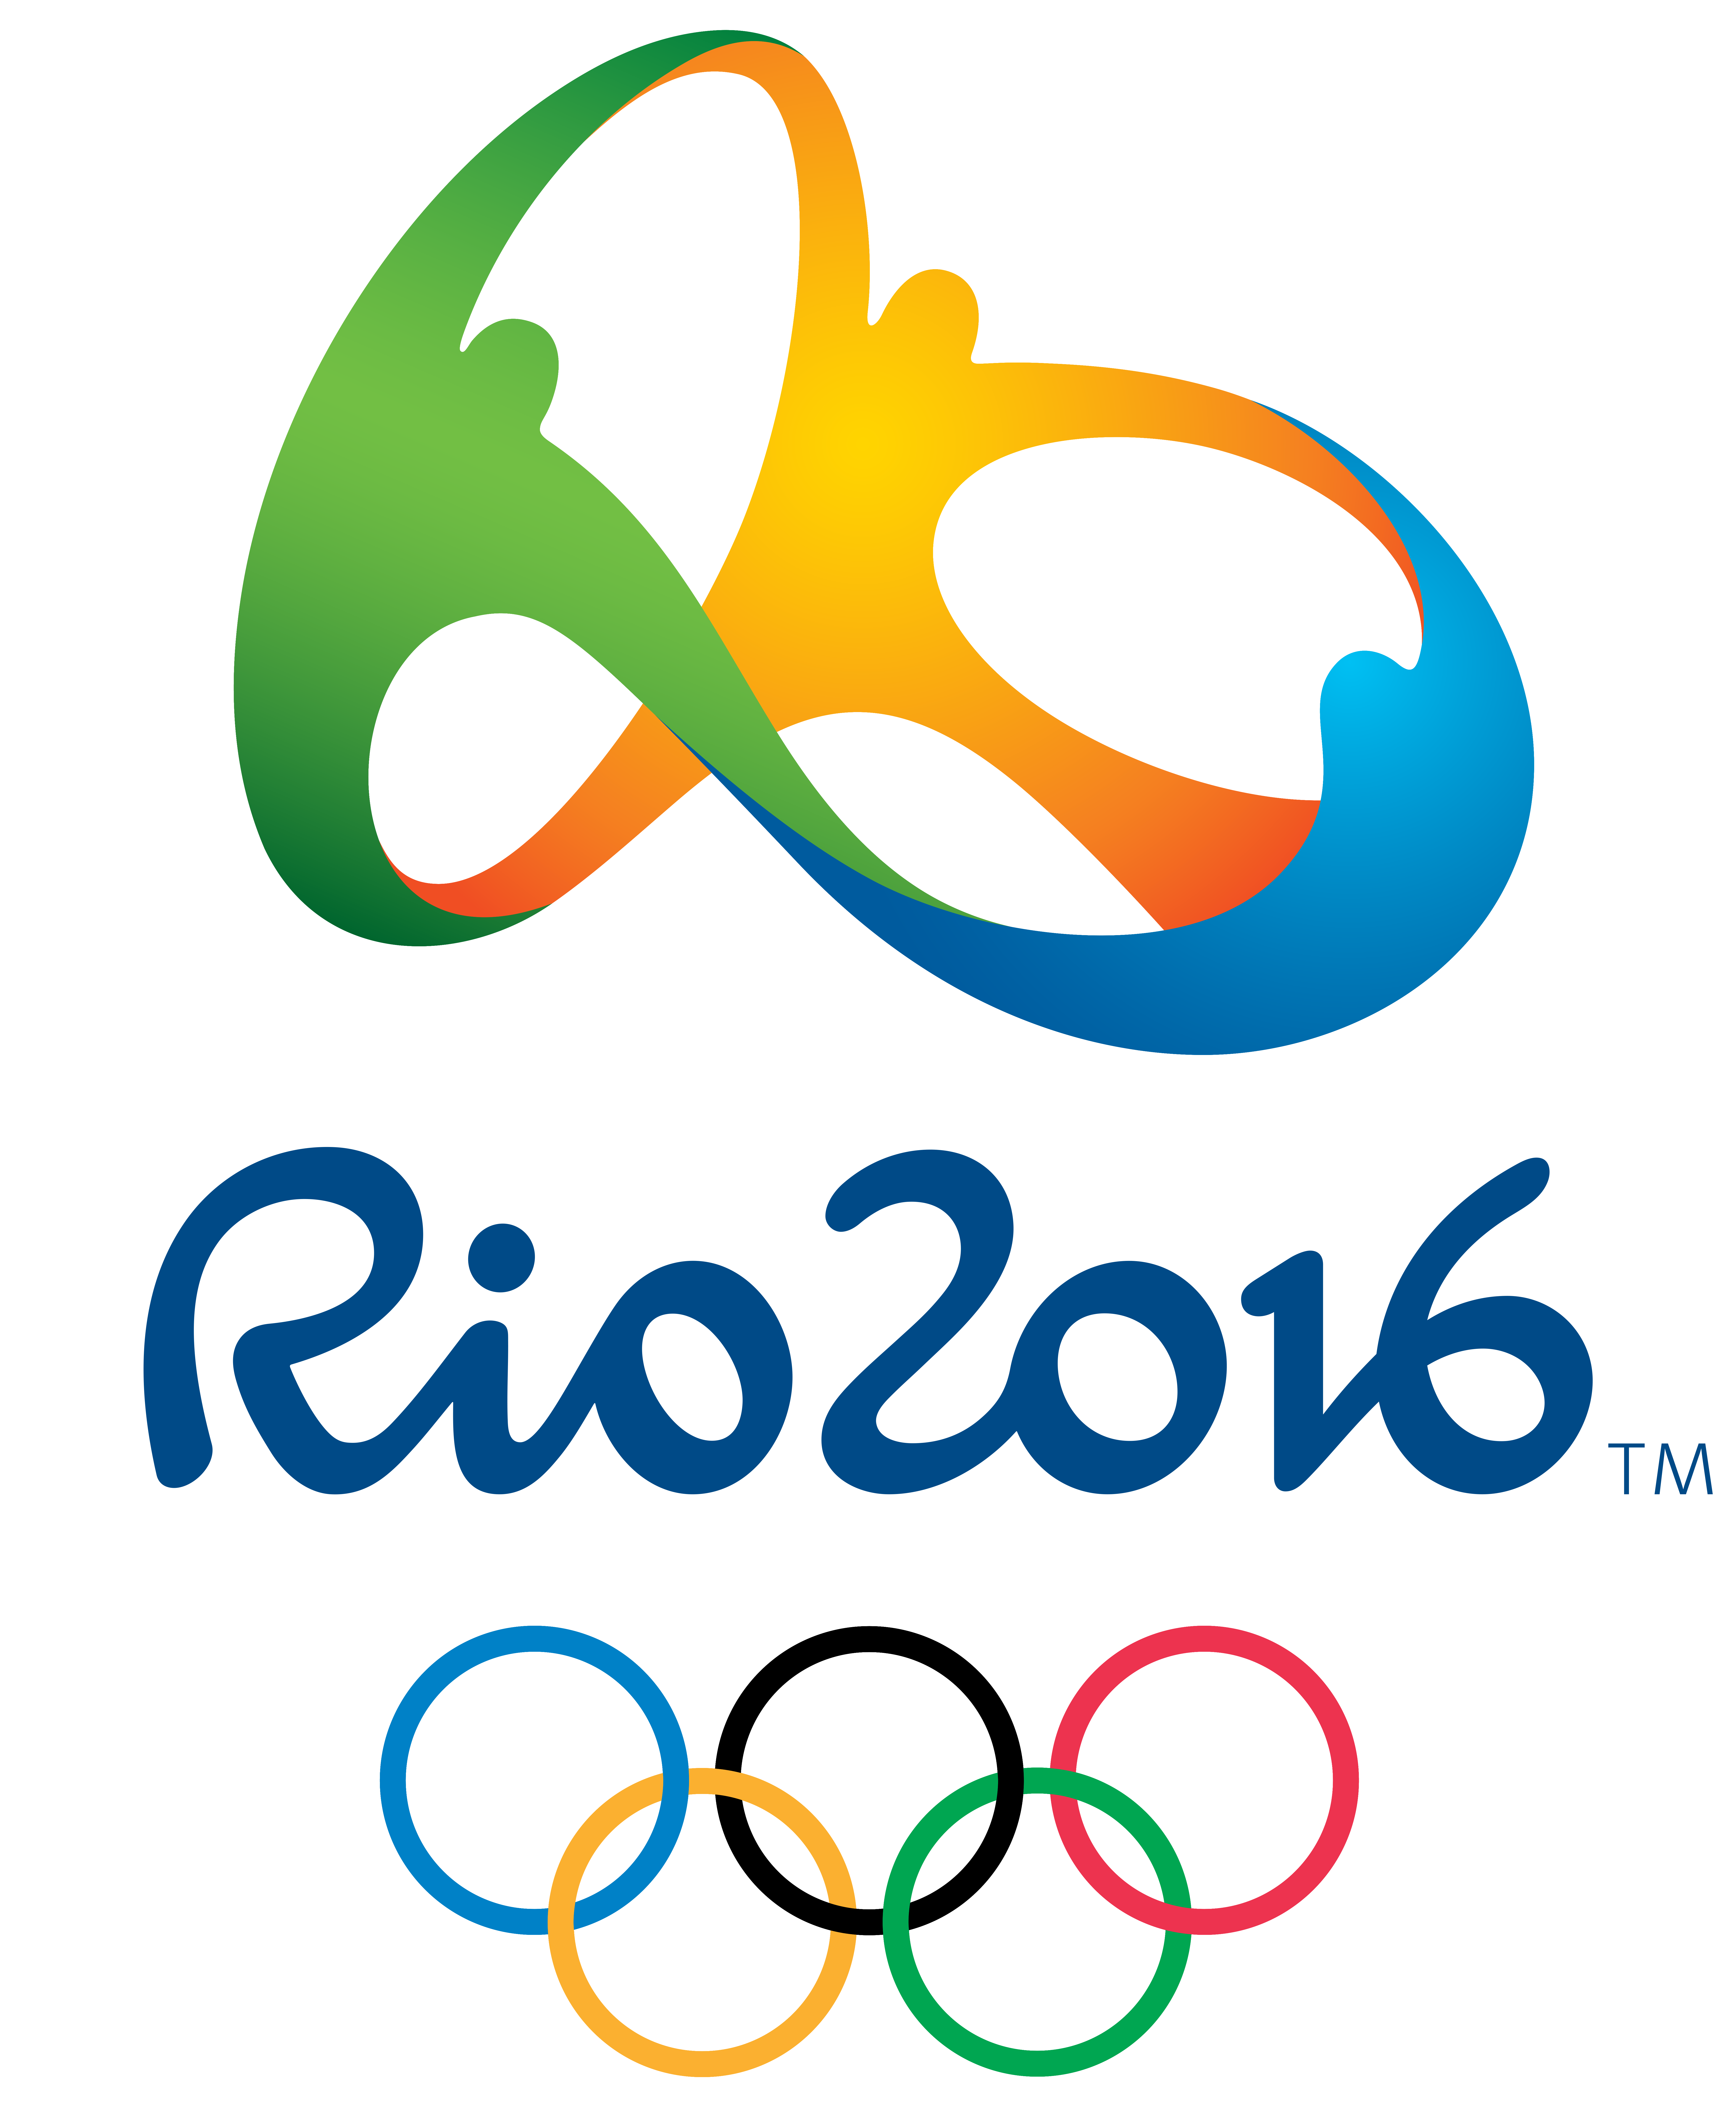 Olympic Games clipart sport logo #13